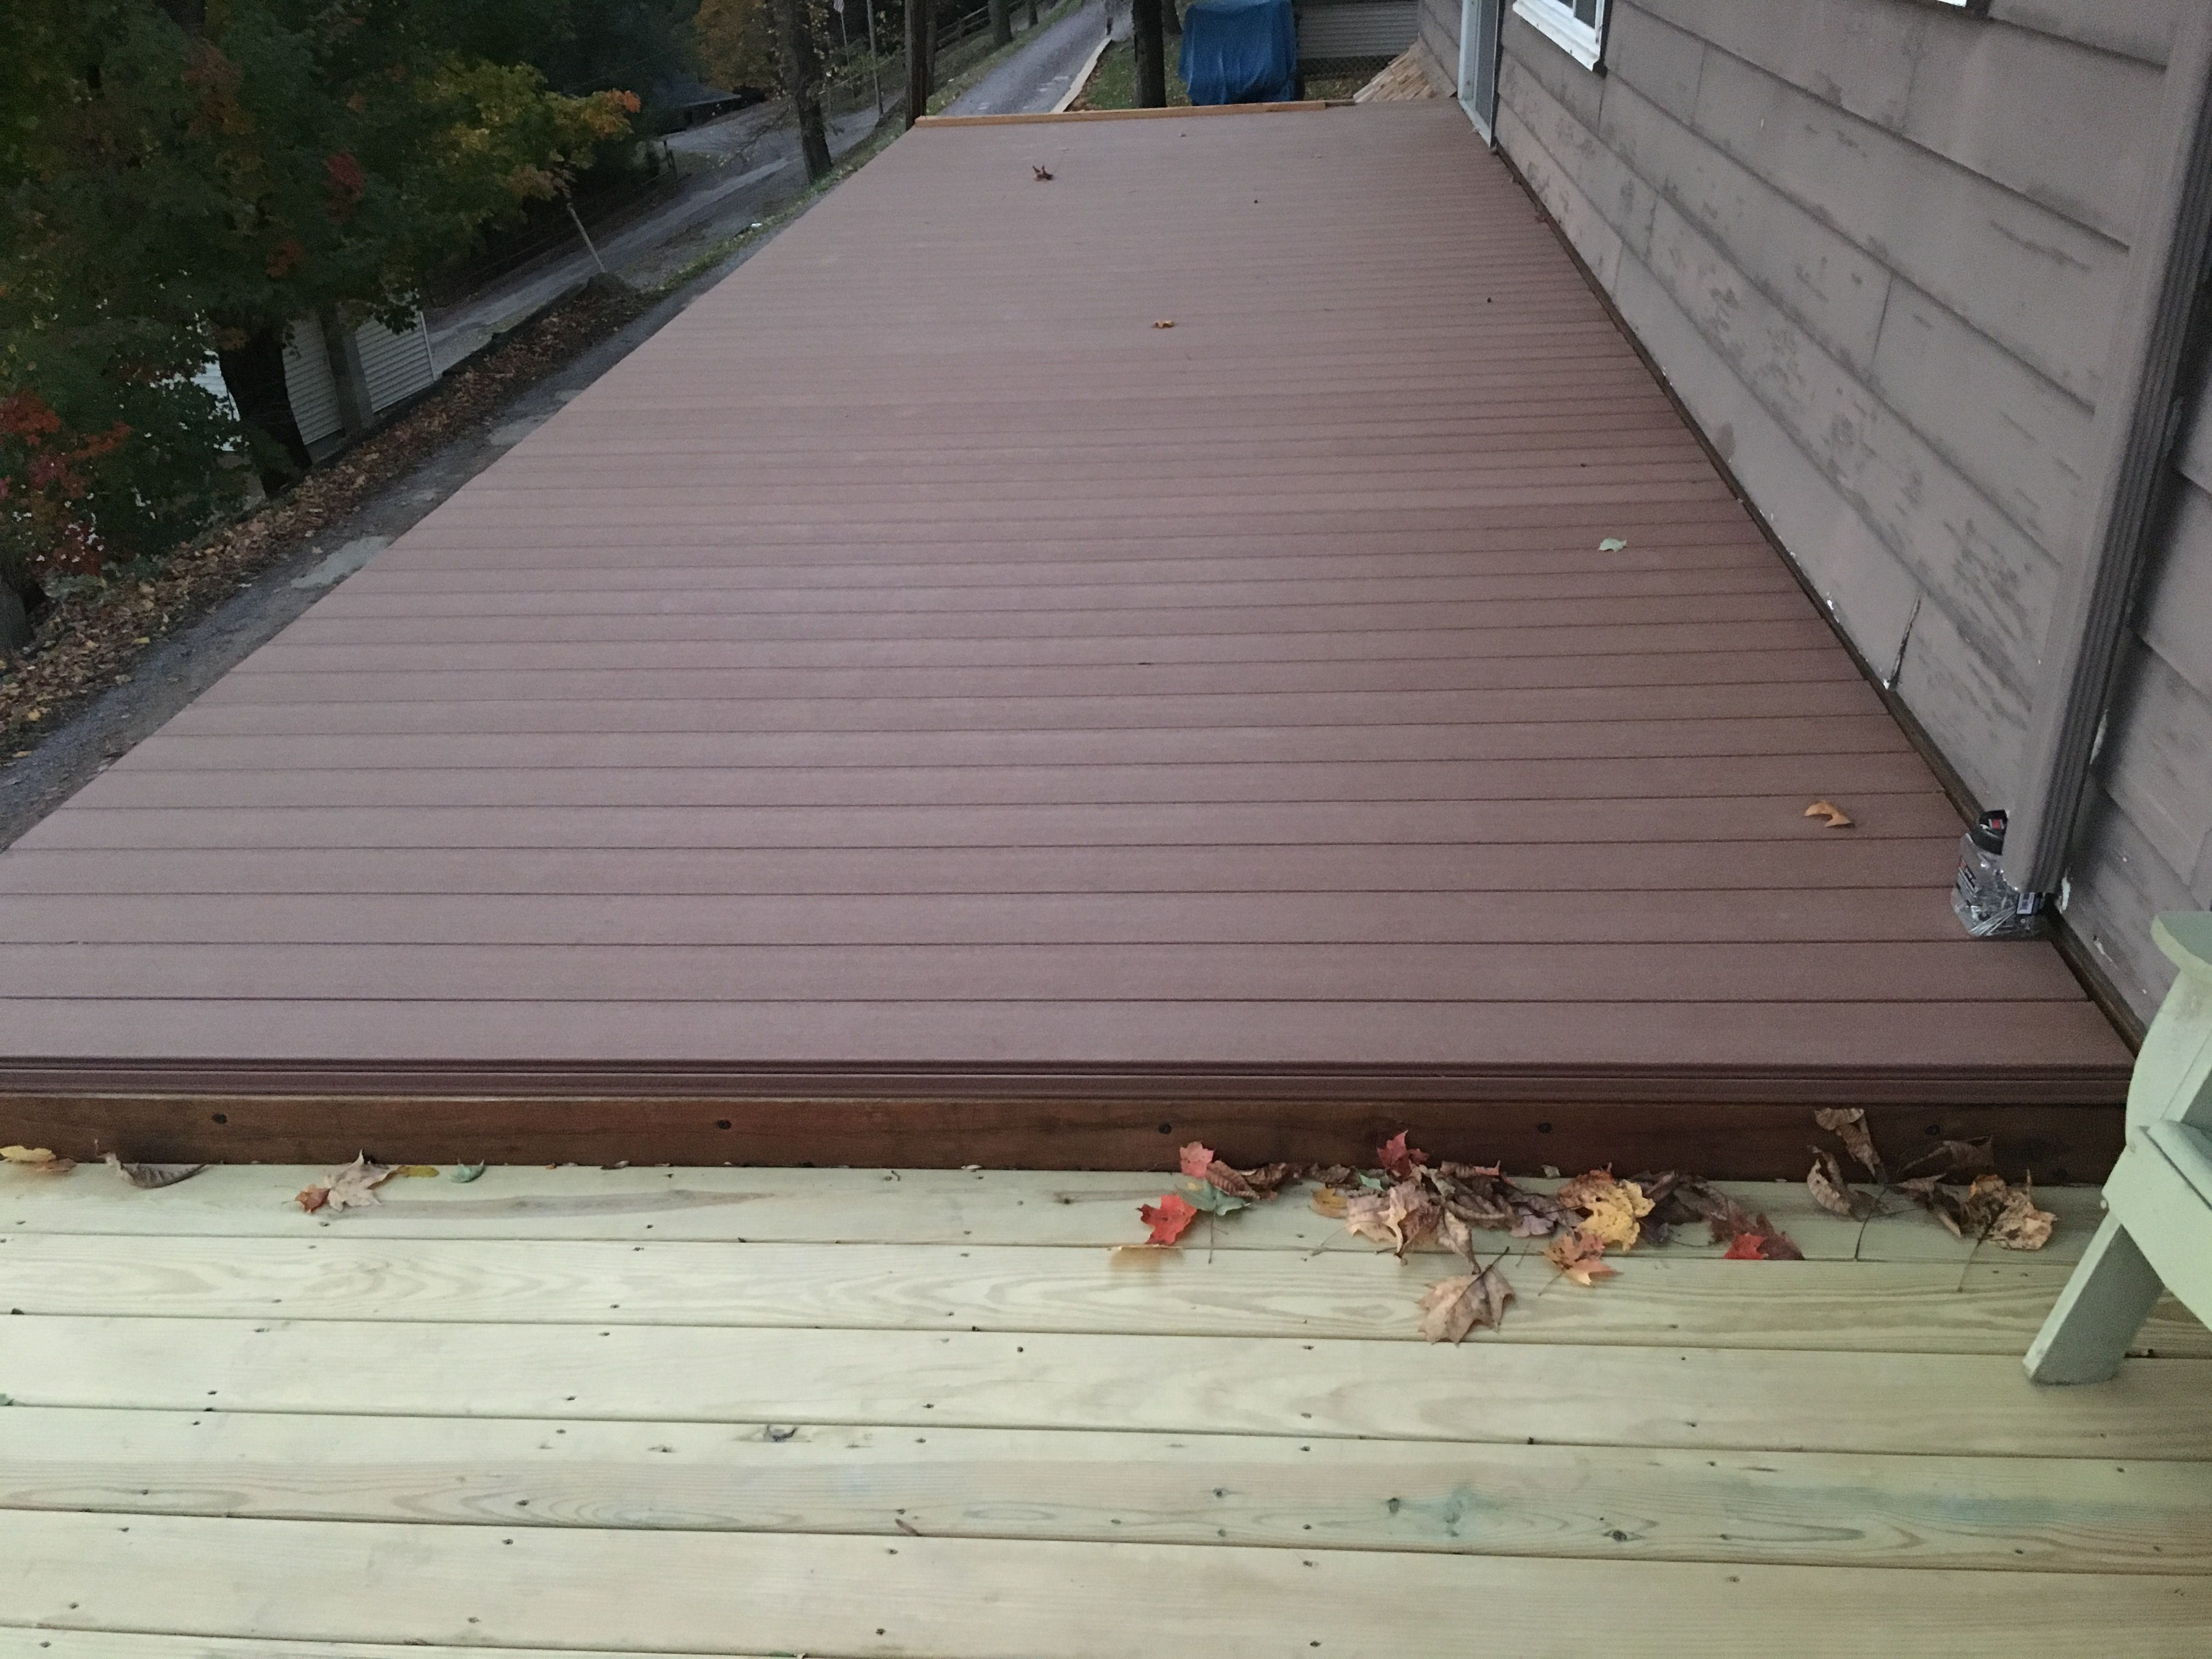 Duxxbak Water Shedding Composite Decking Greenbaydecking Lake intended for dimensions 4032 X 3024